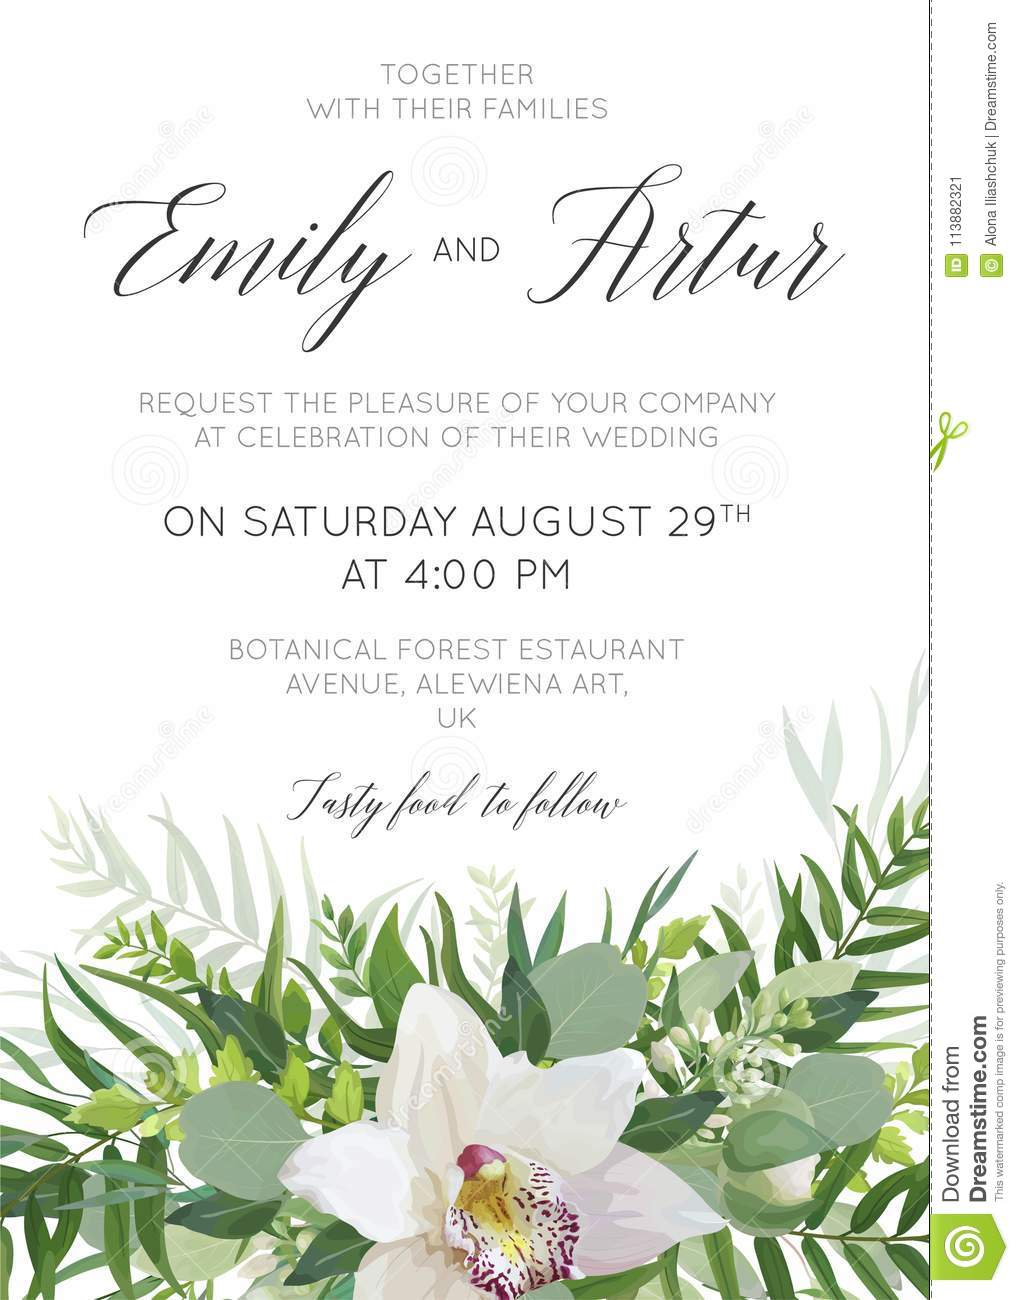 Wedding Invitation, Rsvp, Thank You Cards Floral Design With Gre ...